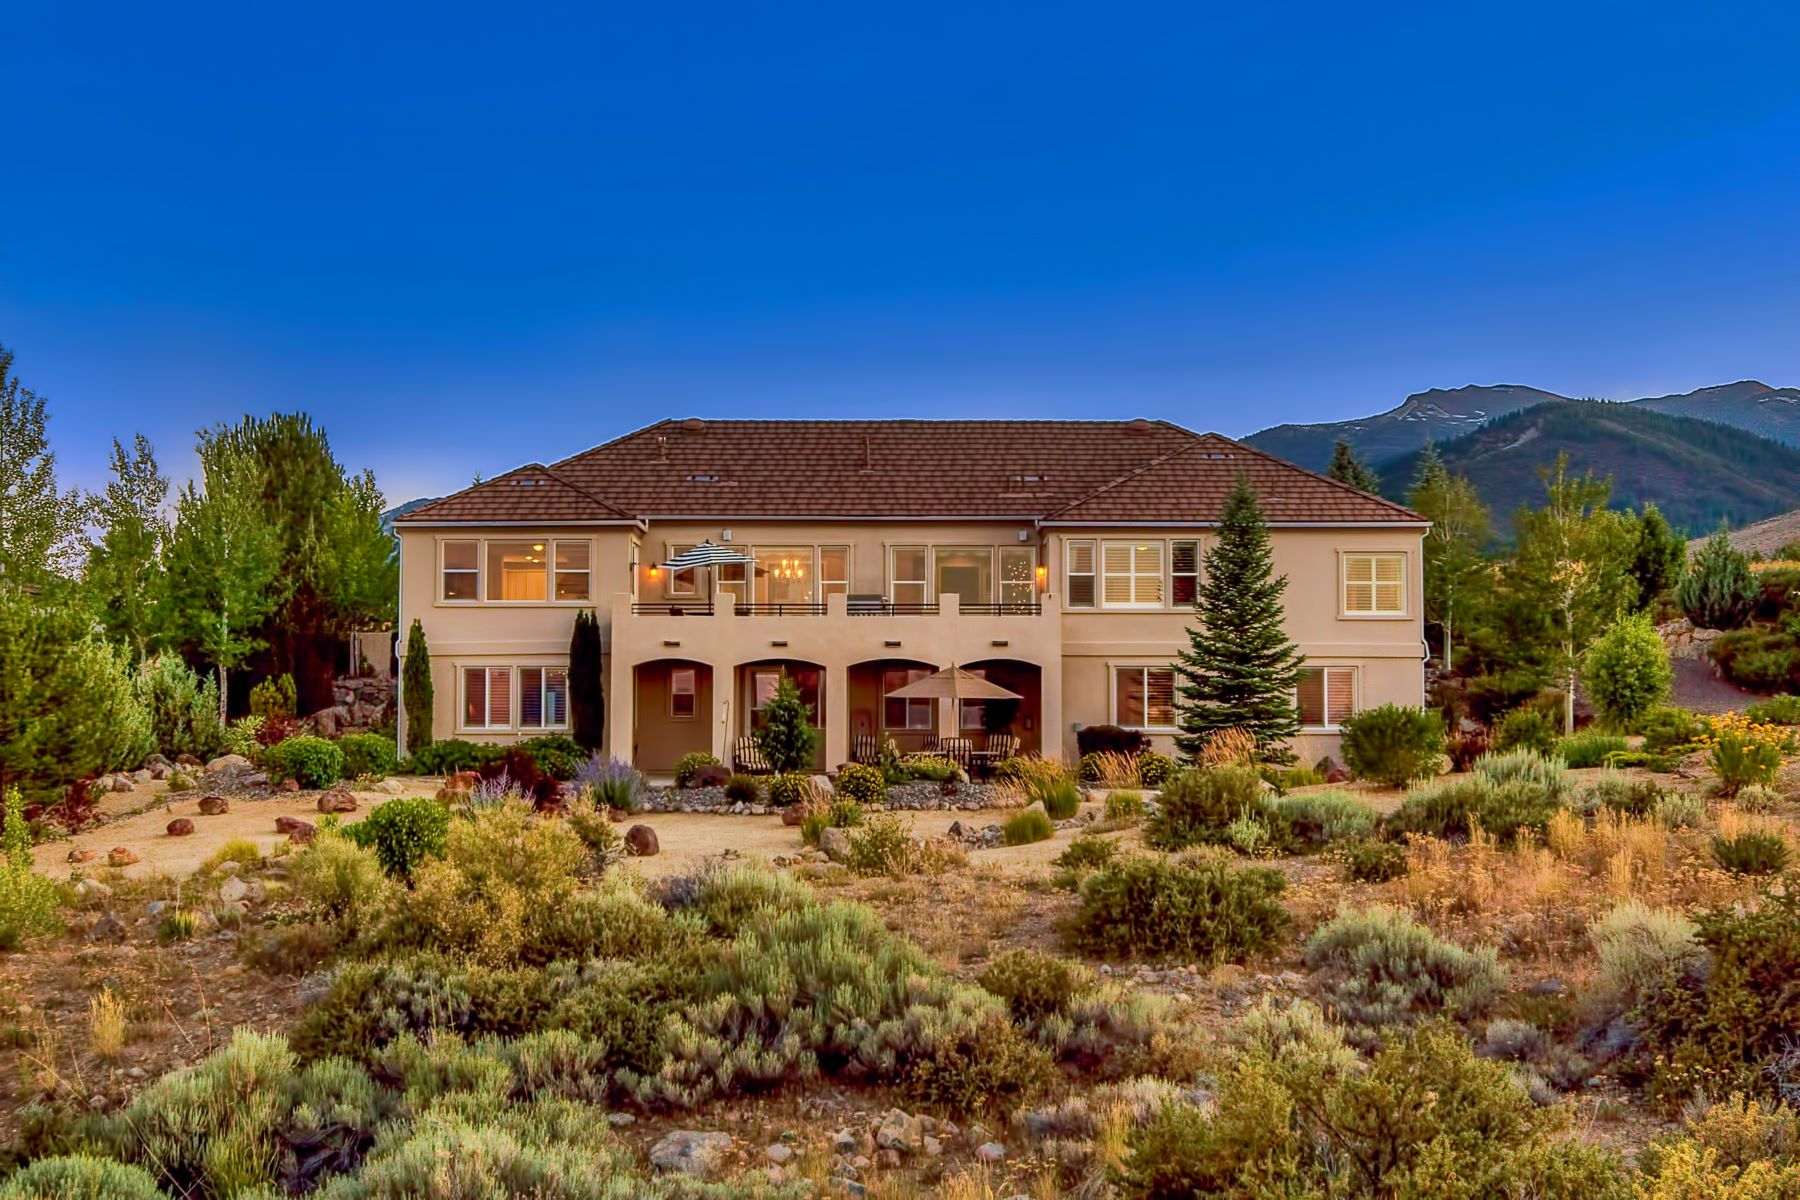 Single Family Homes for Sale at 5900 Cour Saint Michelle, Reno, Nevada 5900 Cour Saint Michelle Reno, Nevada 89511 United States